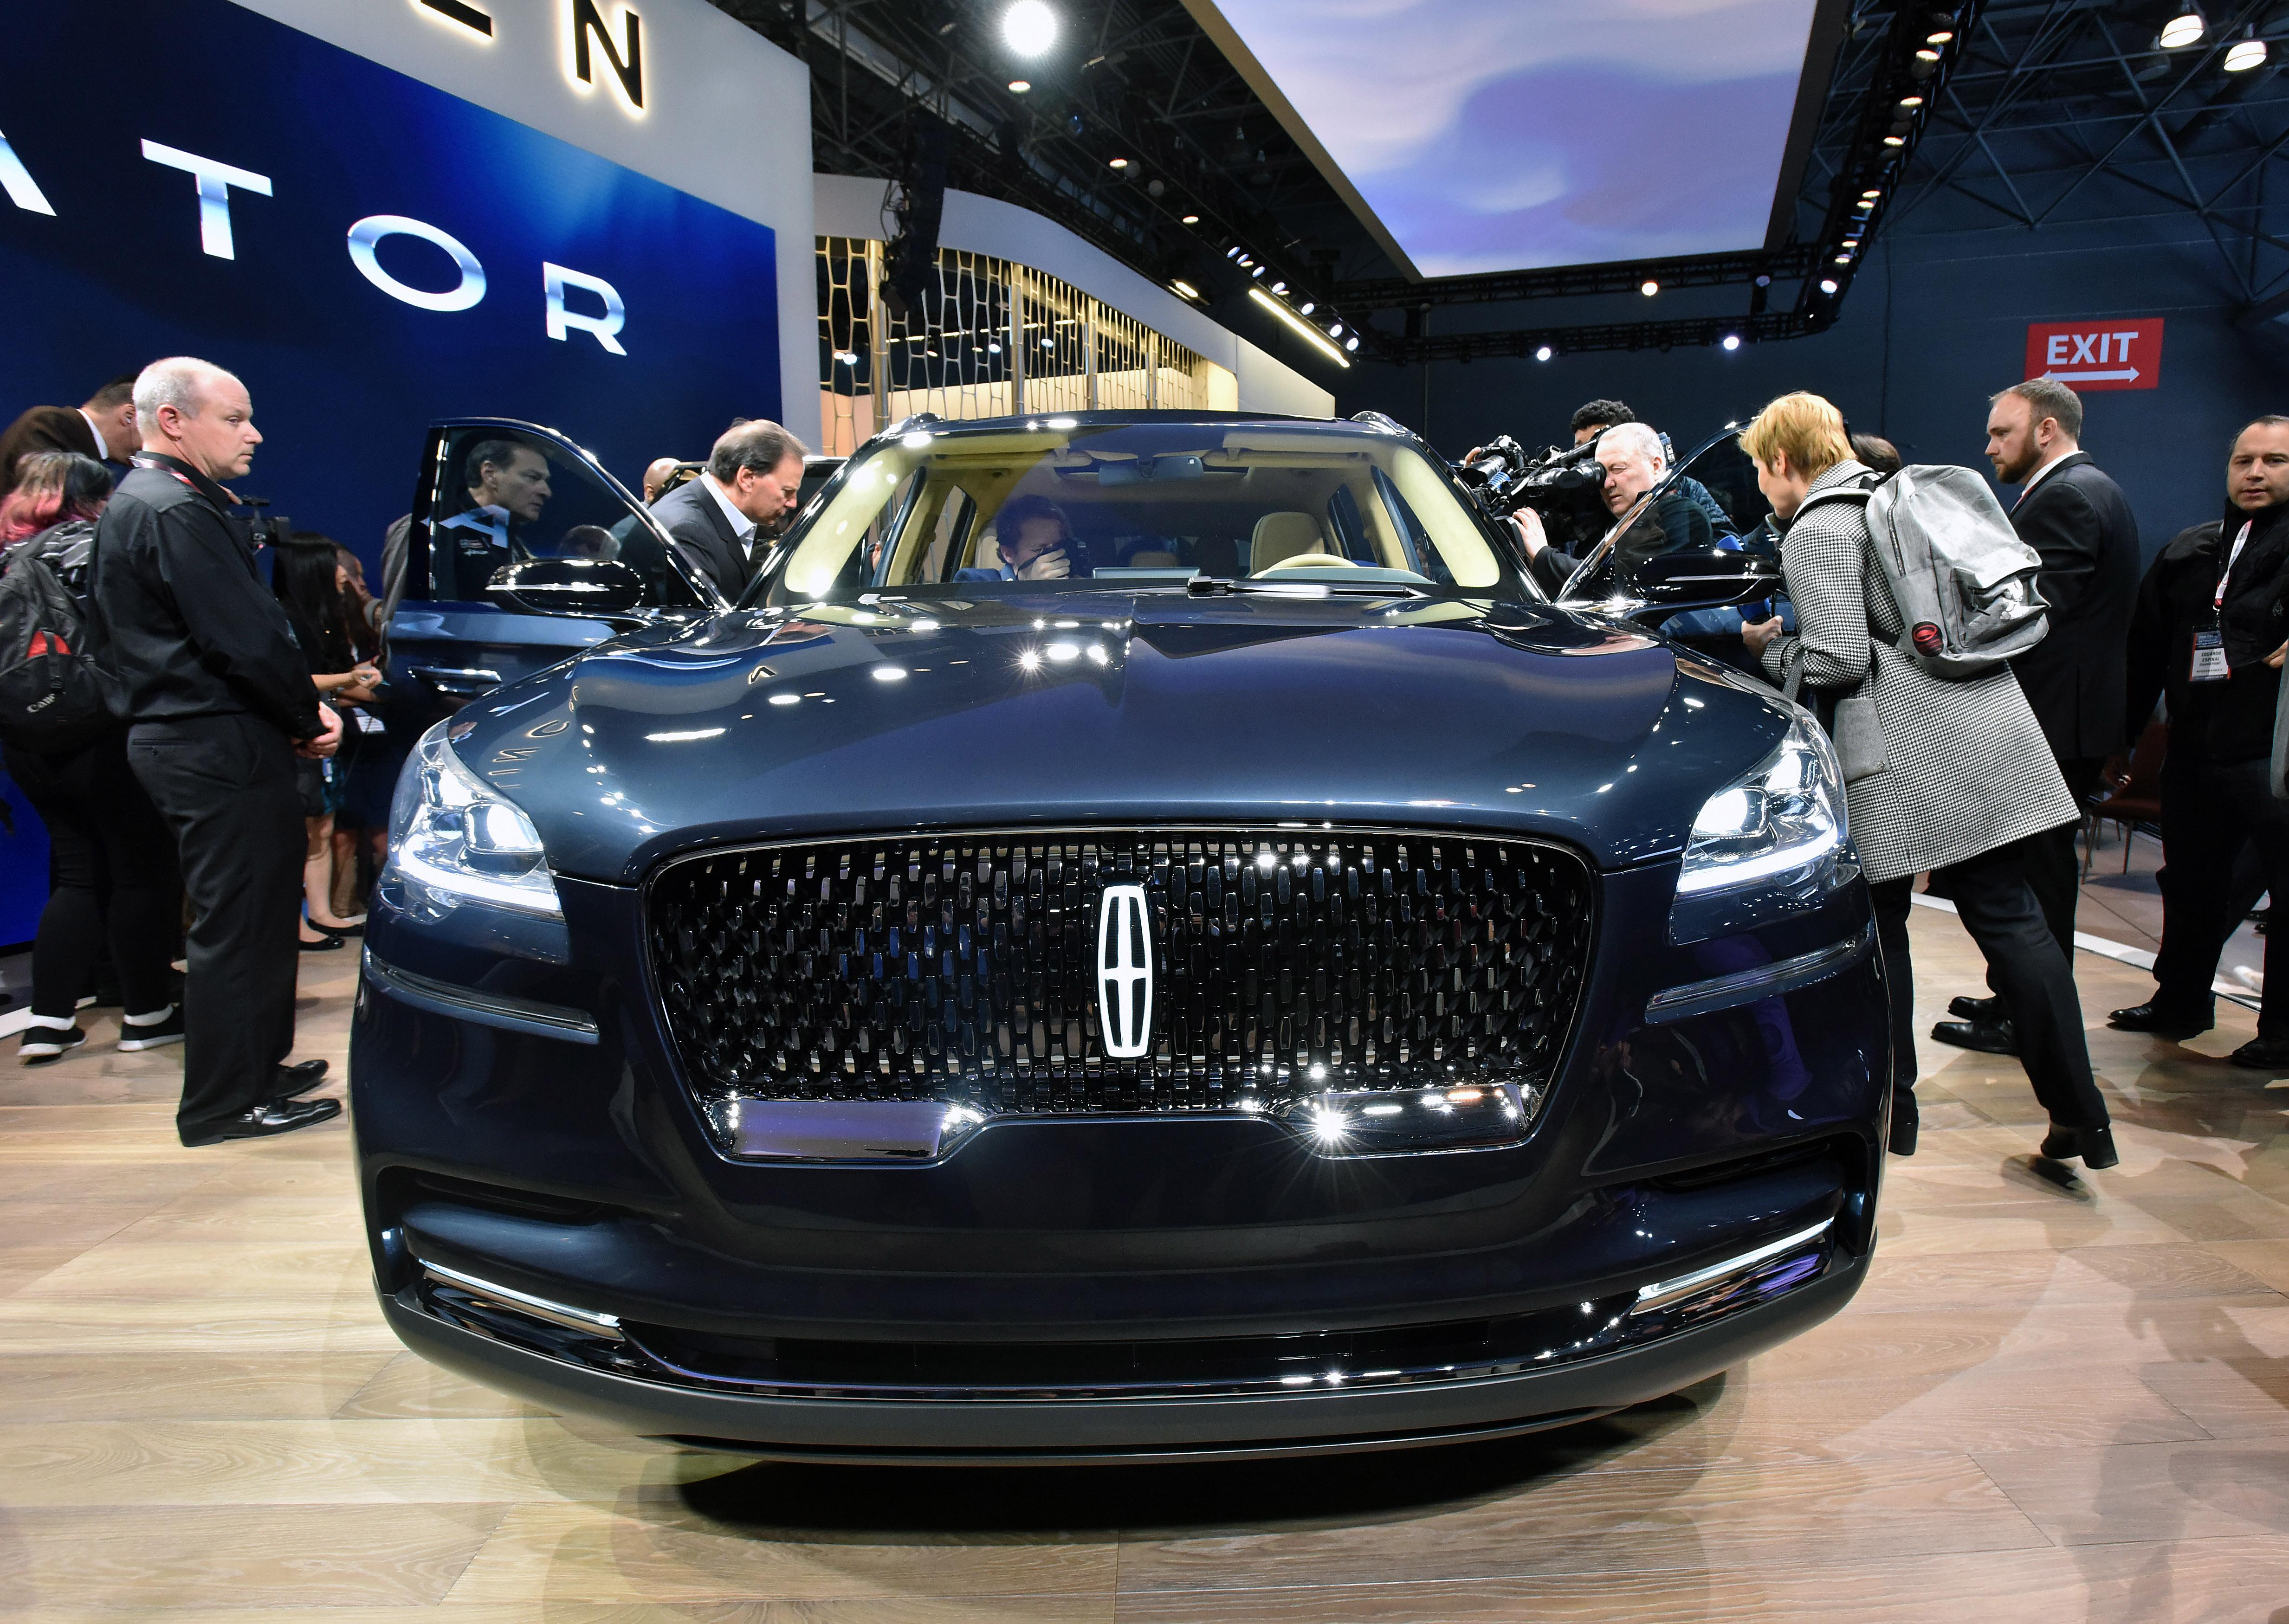 NEW YORK AUTO SHOW: Lincoln introduces all-new Aviator SUV | WSMH